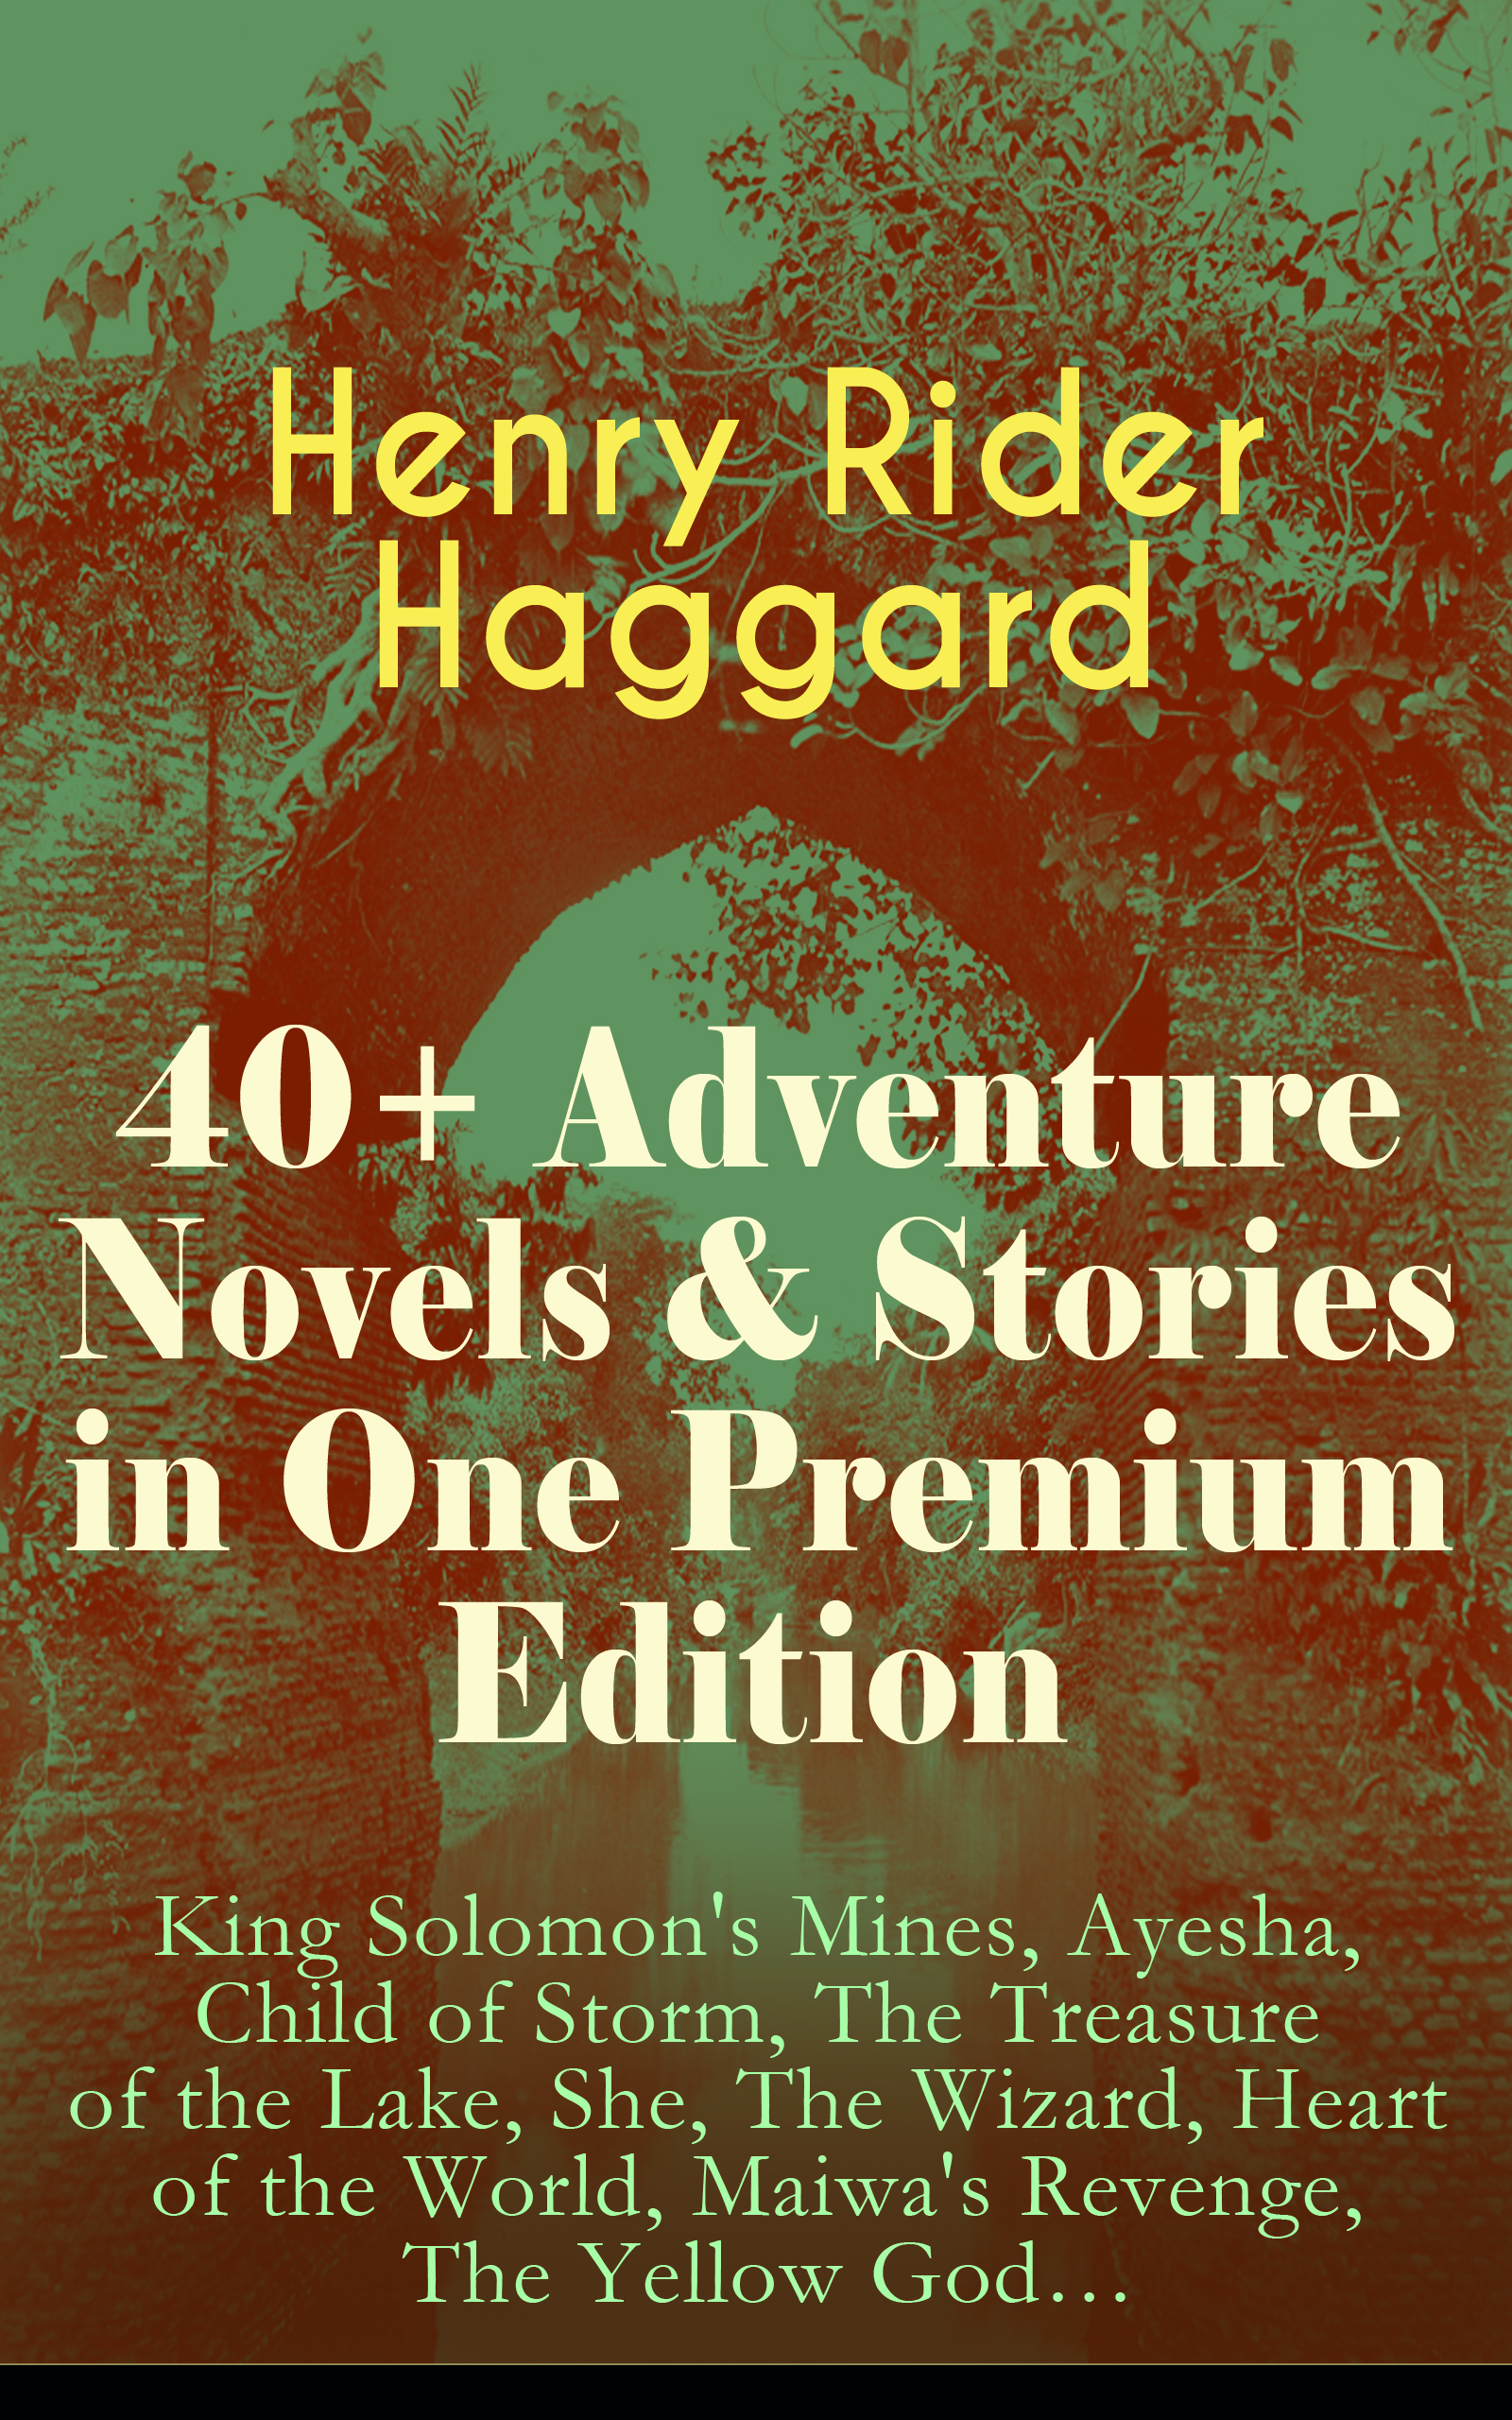 Henry Rider Haggard 40+ Adventure Novels & Stories in One Premium Edition: King Solomon's Mines, Ayesha, Child of Storm, The Treasure of the Lake, She, The Wizard, Heart of the World, Maiwa's Revenge, The Yellow God… in search of king solomon s mines